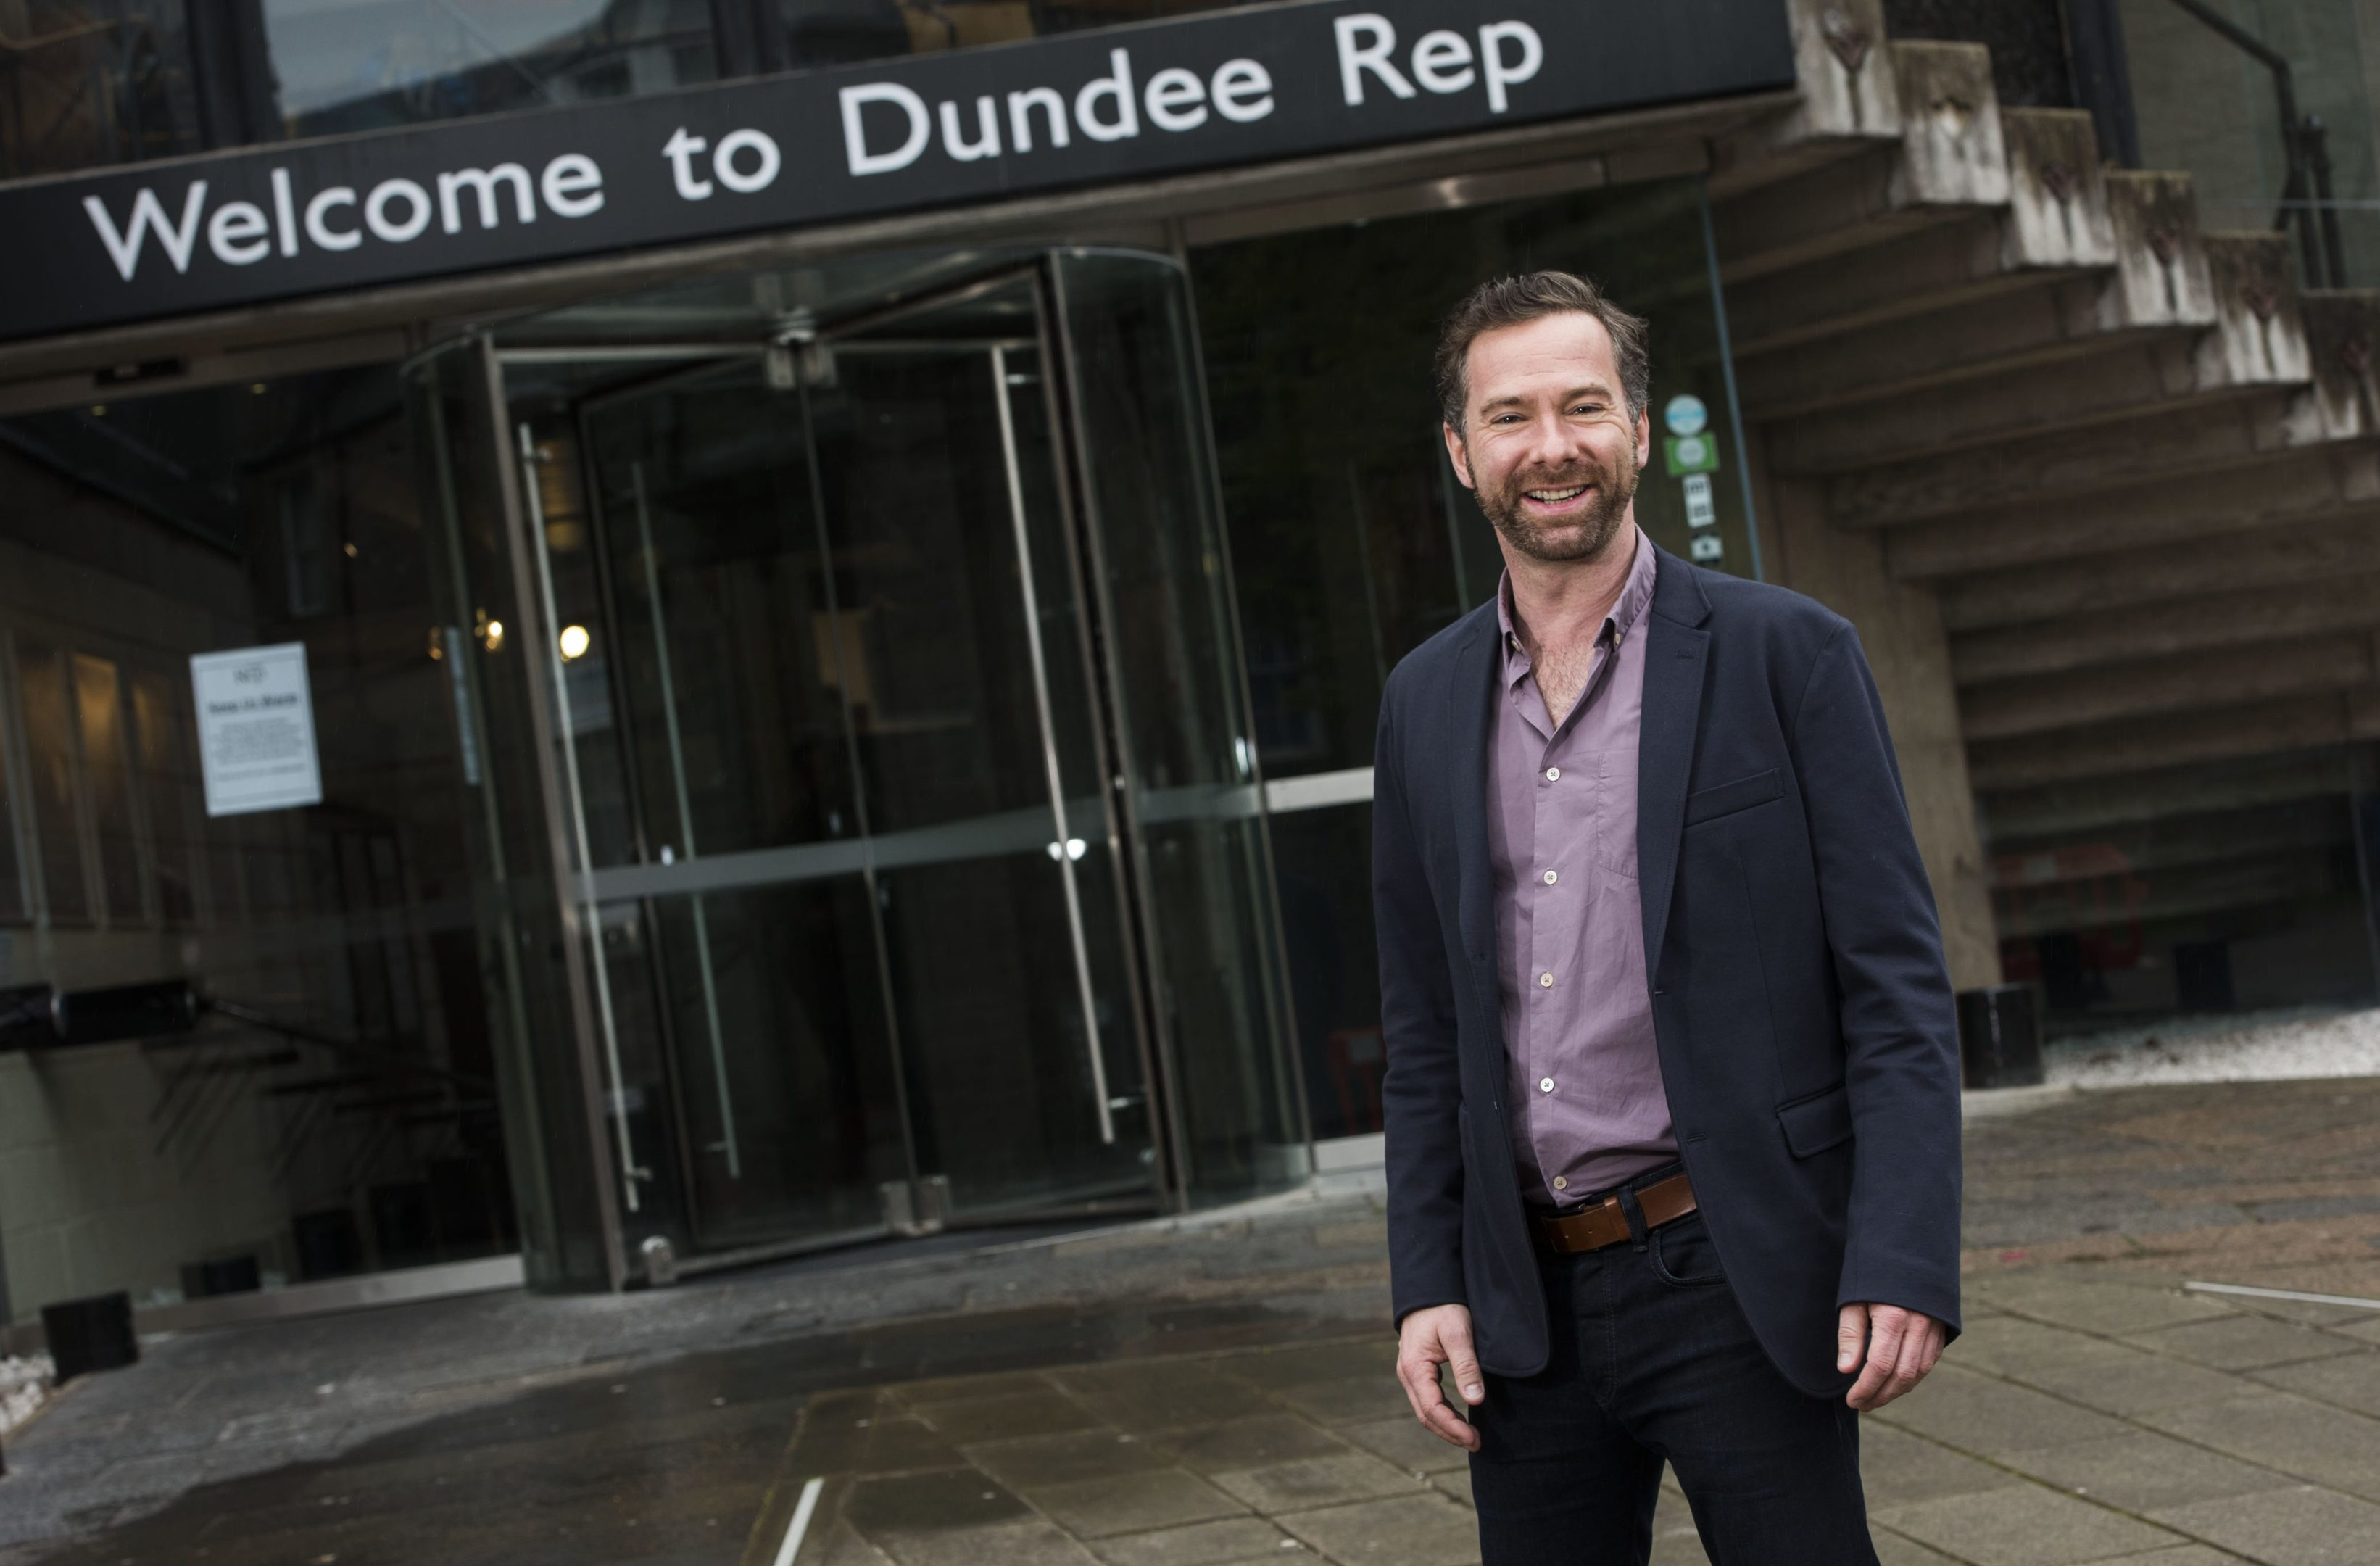 Andrew Panton, Artistic Director at Dundee Rep